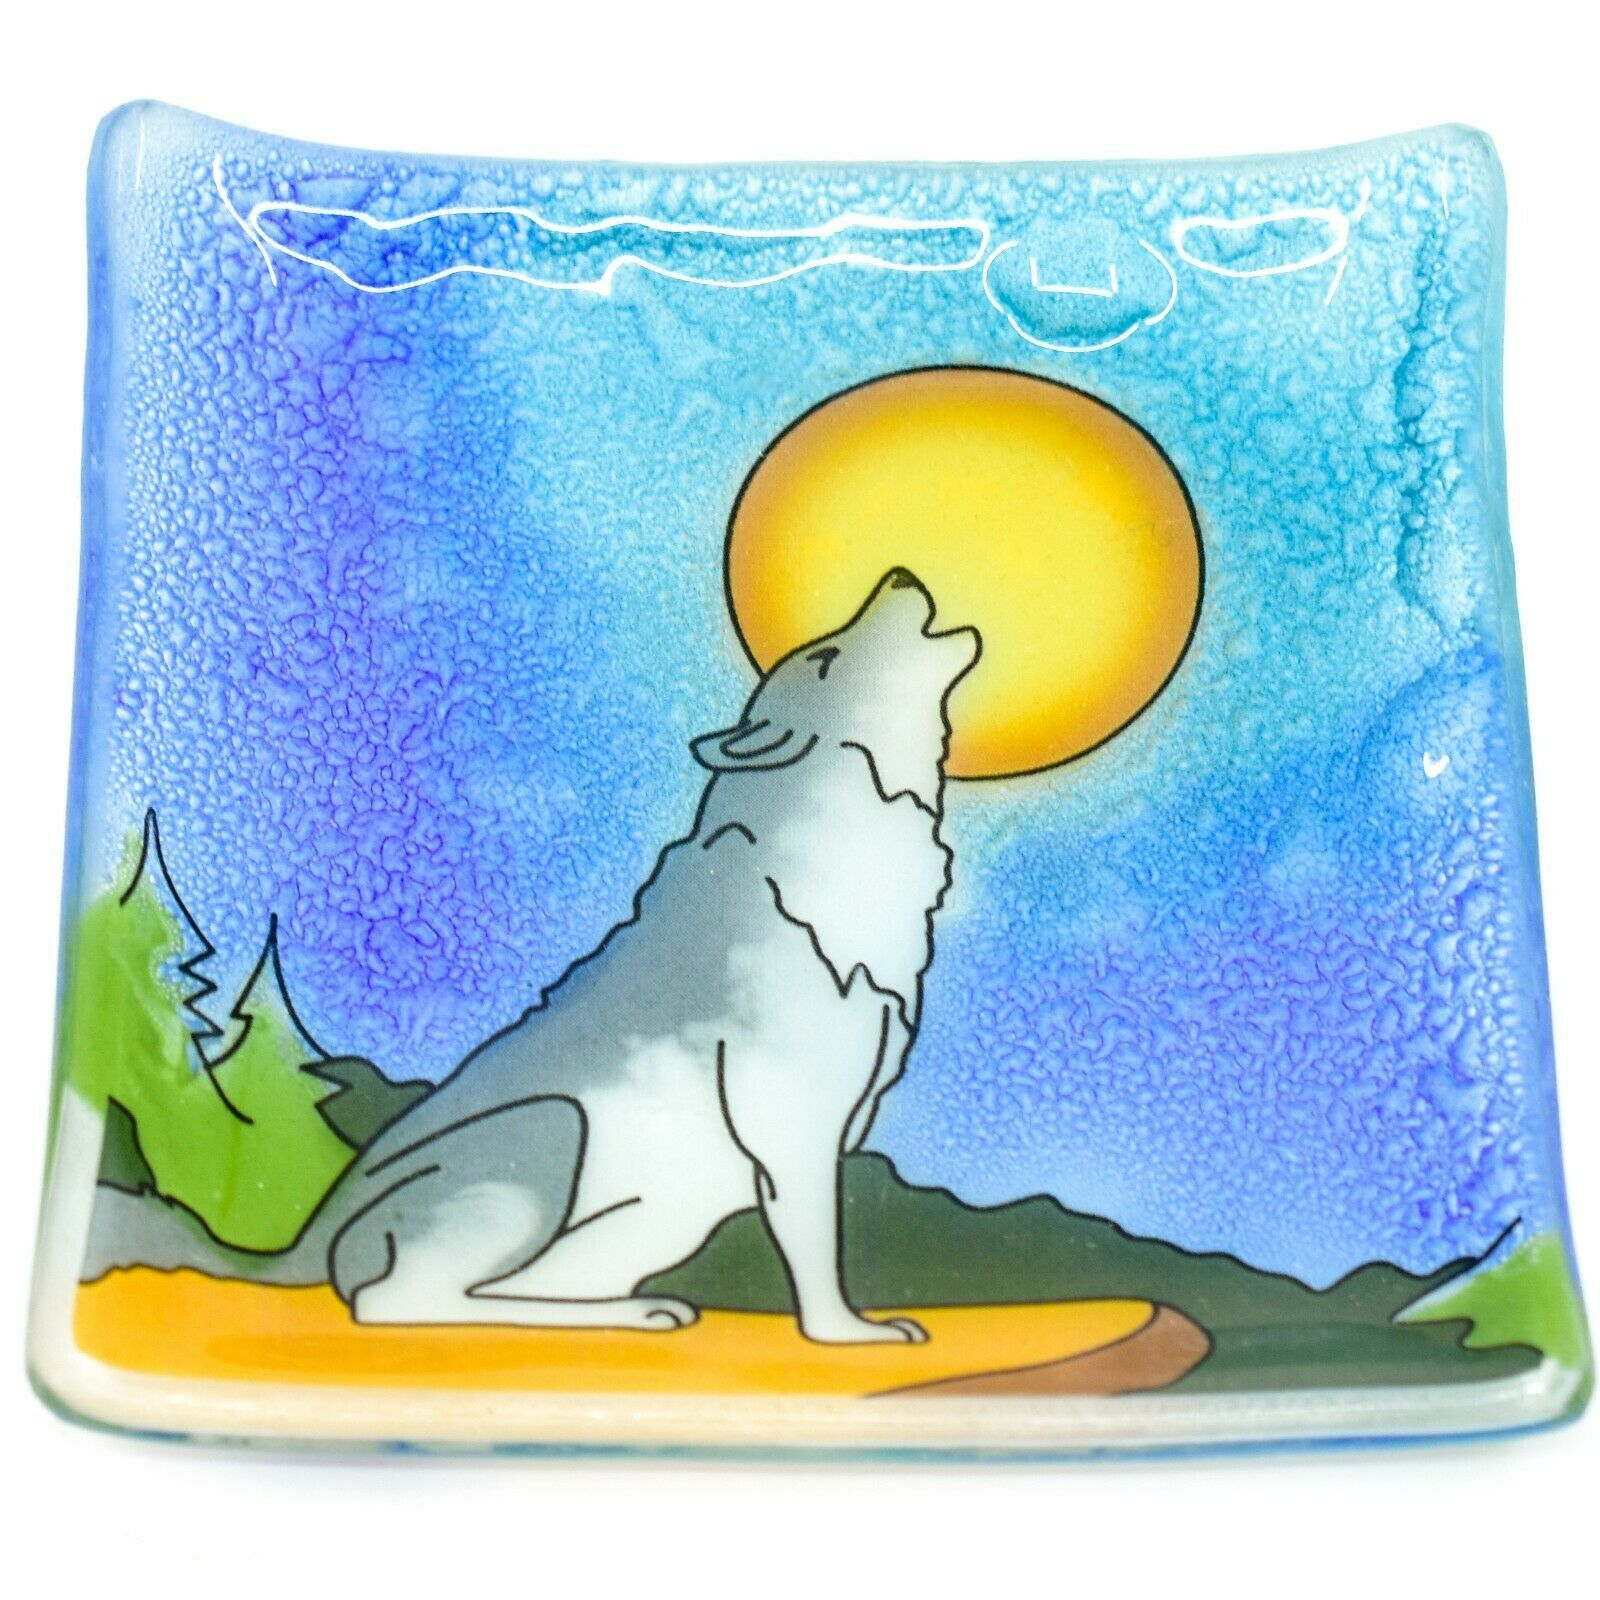 Fused Art Glass Howling Wolf Design Square Soap Dish Handmade Ecuador